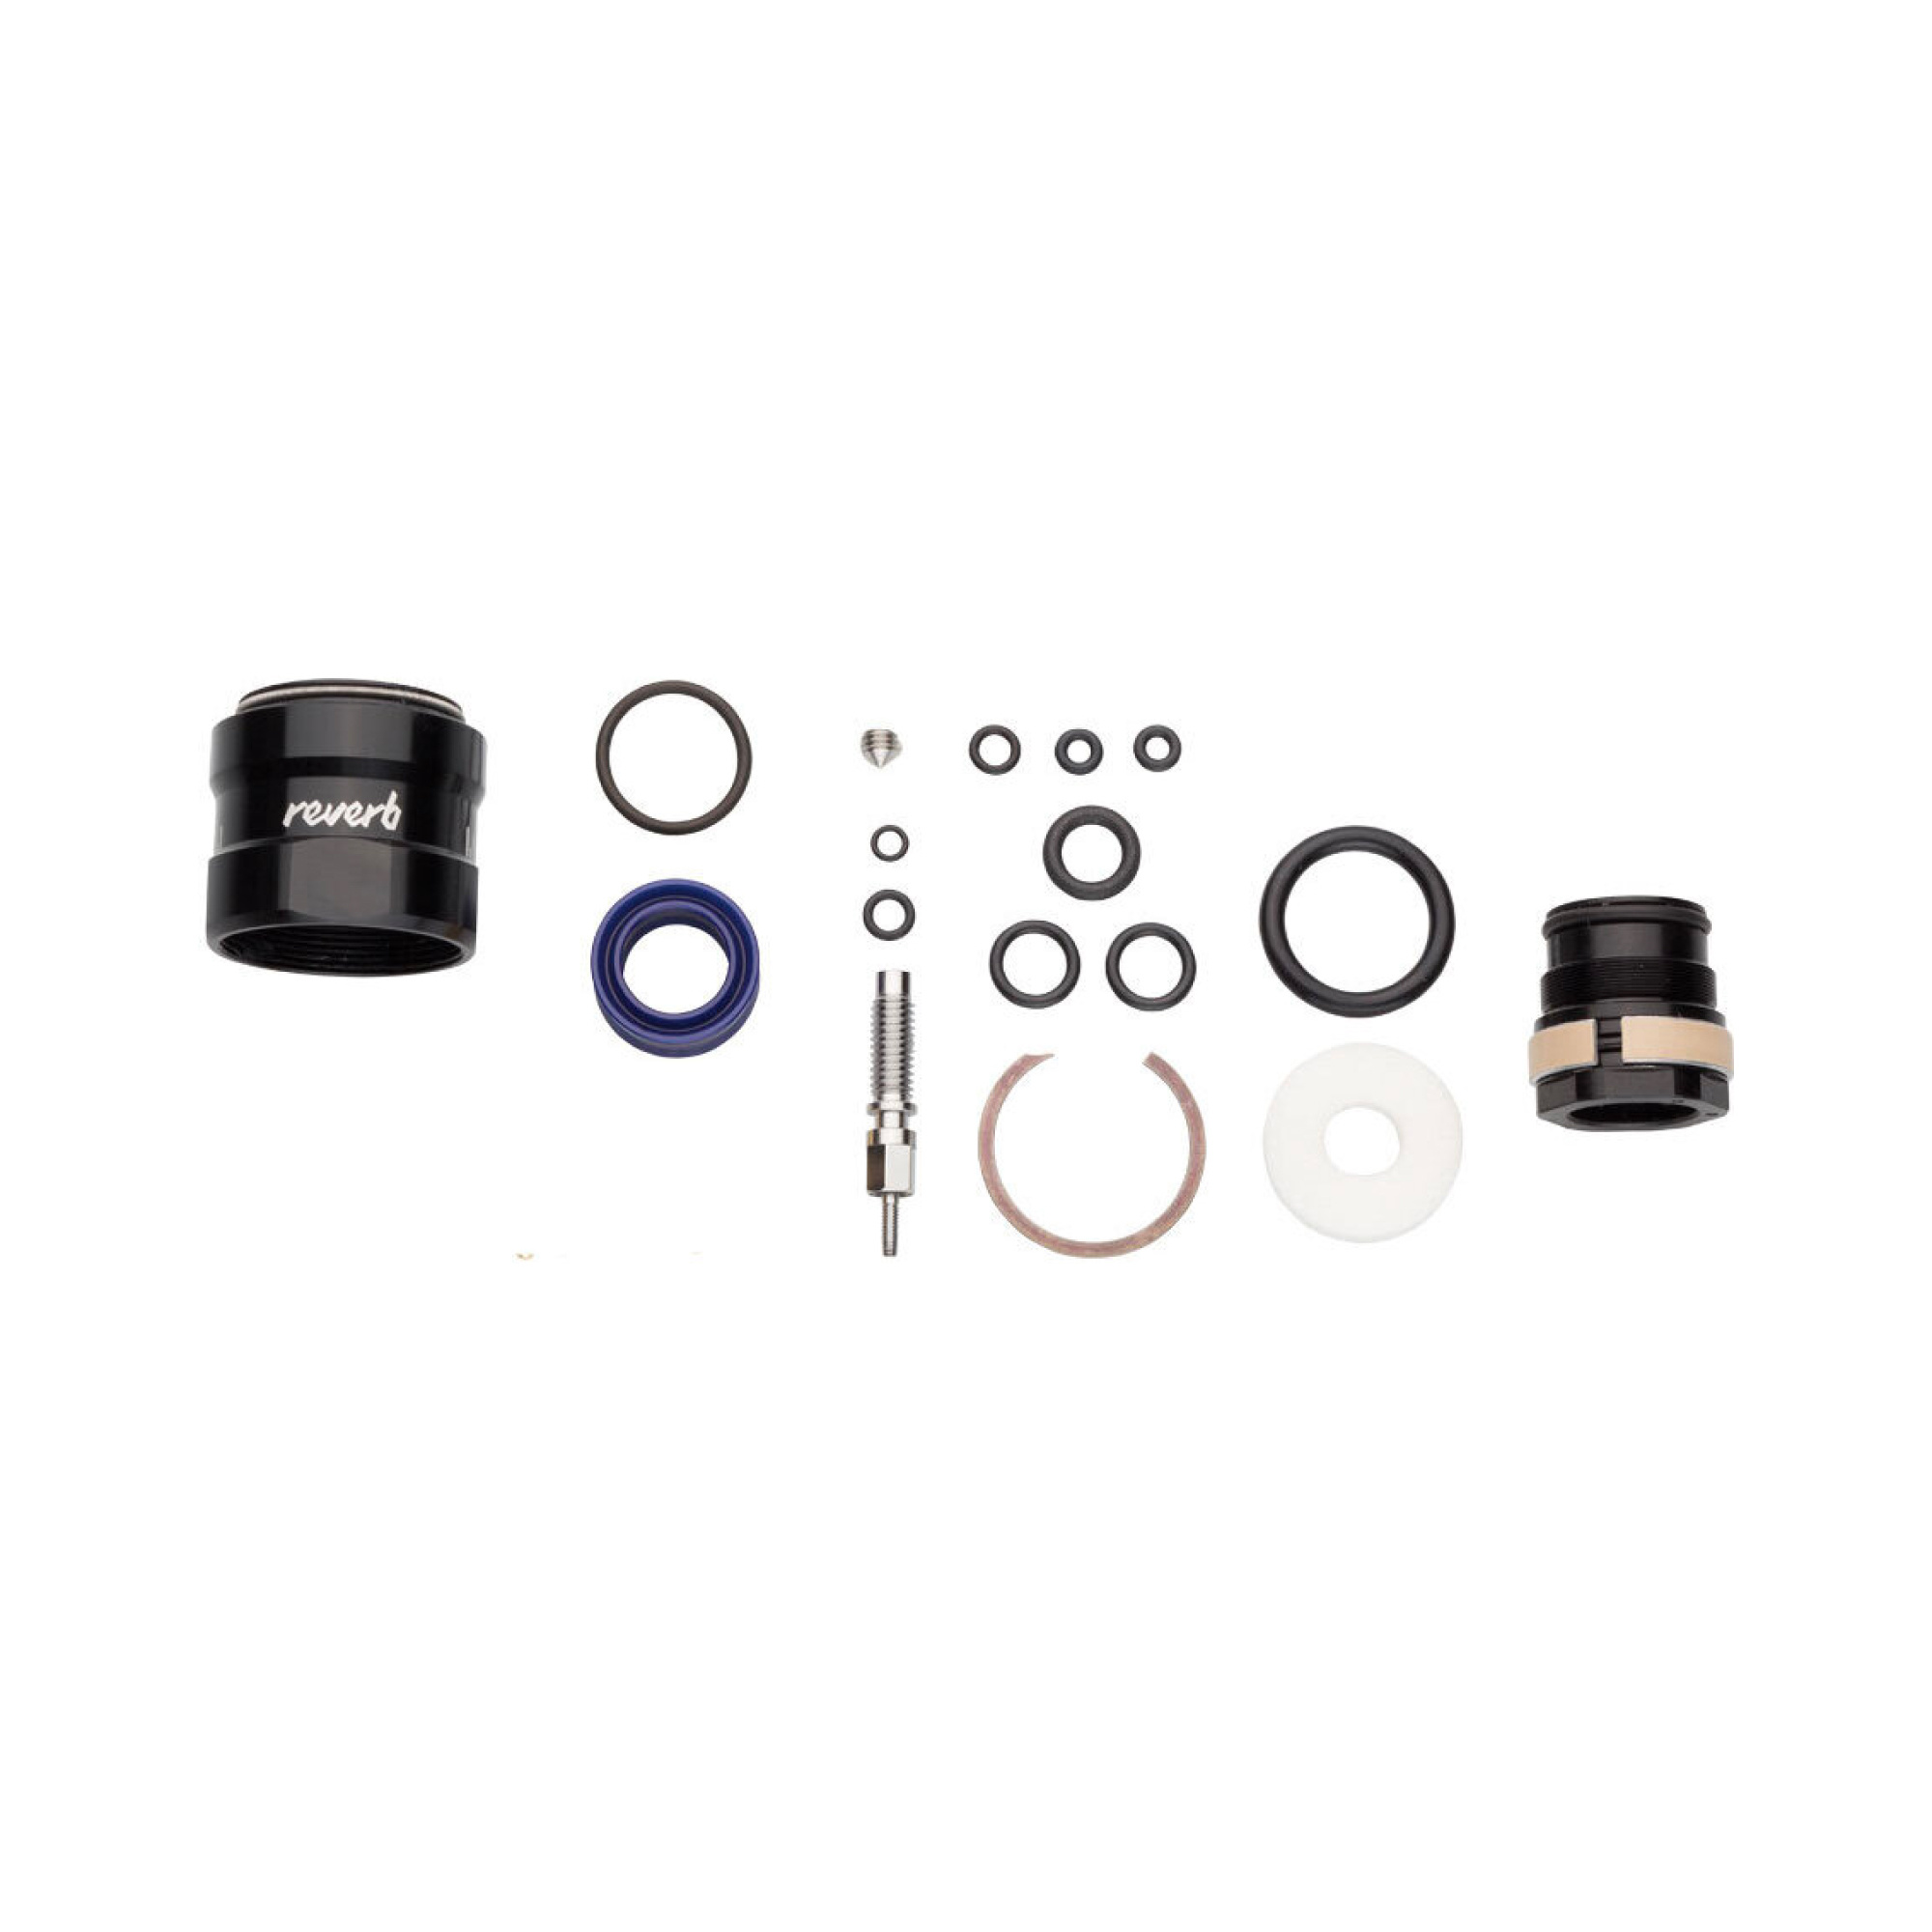 Reverb Stealth B1 Service Kit 400 Hour/2 Year-1